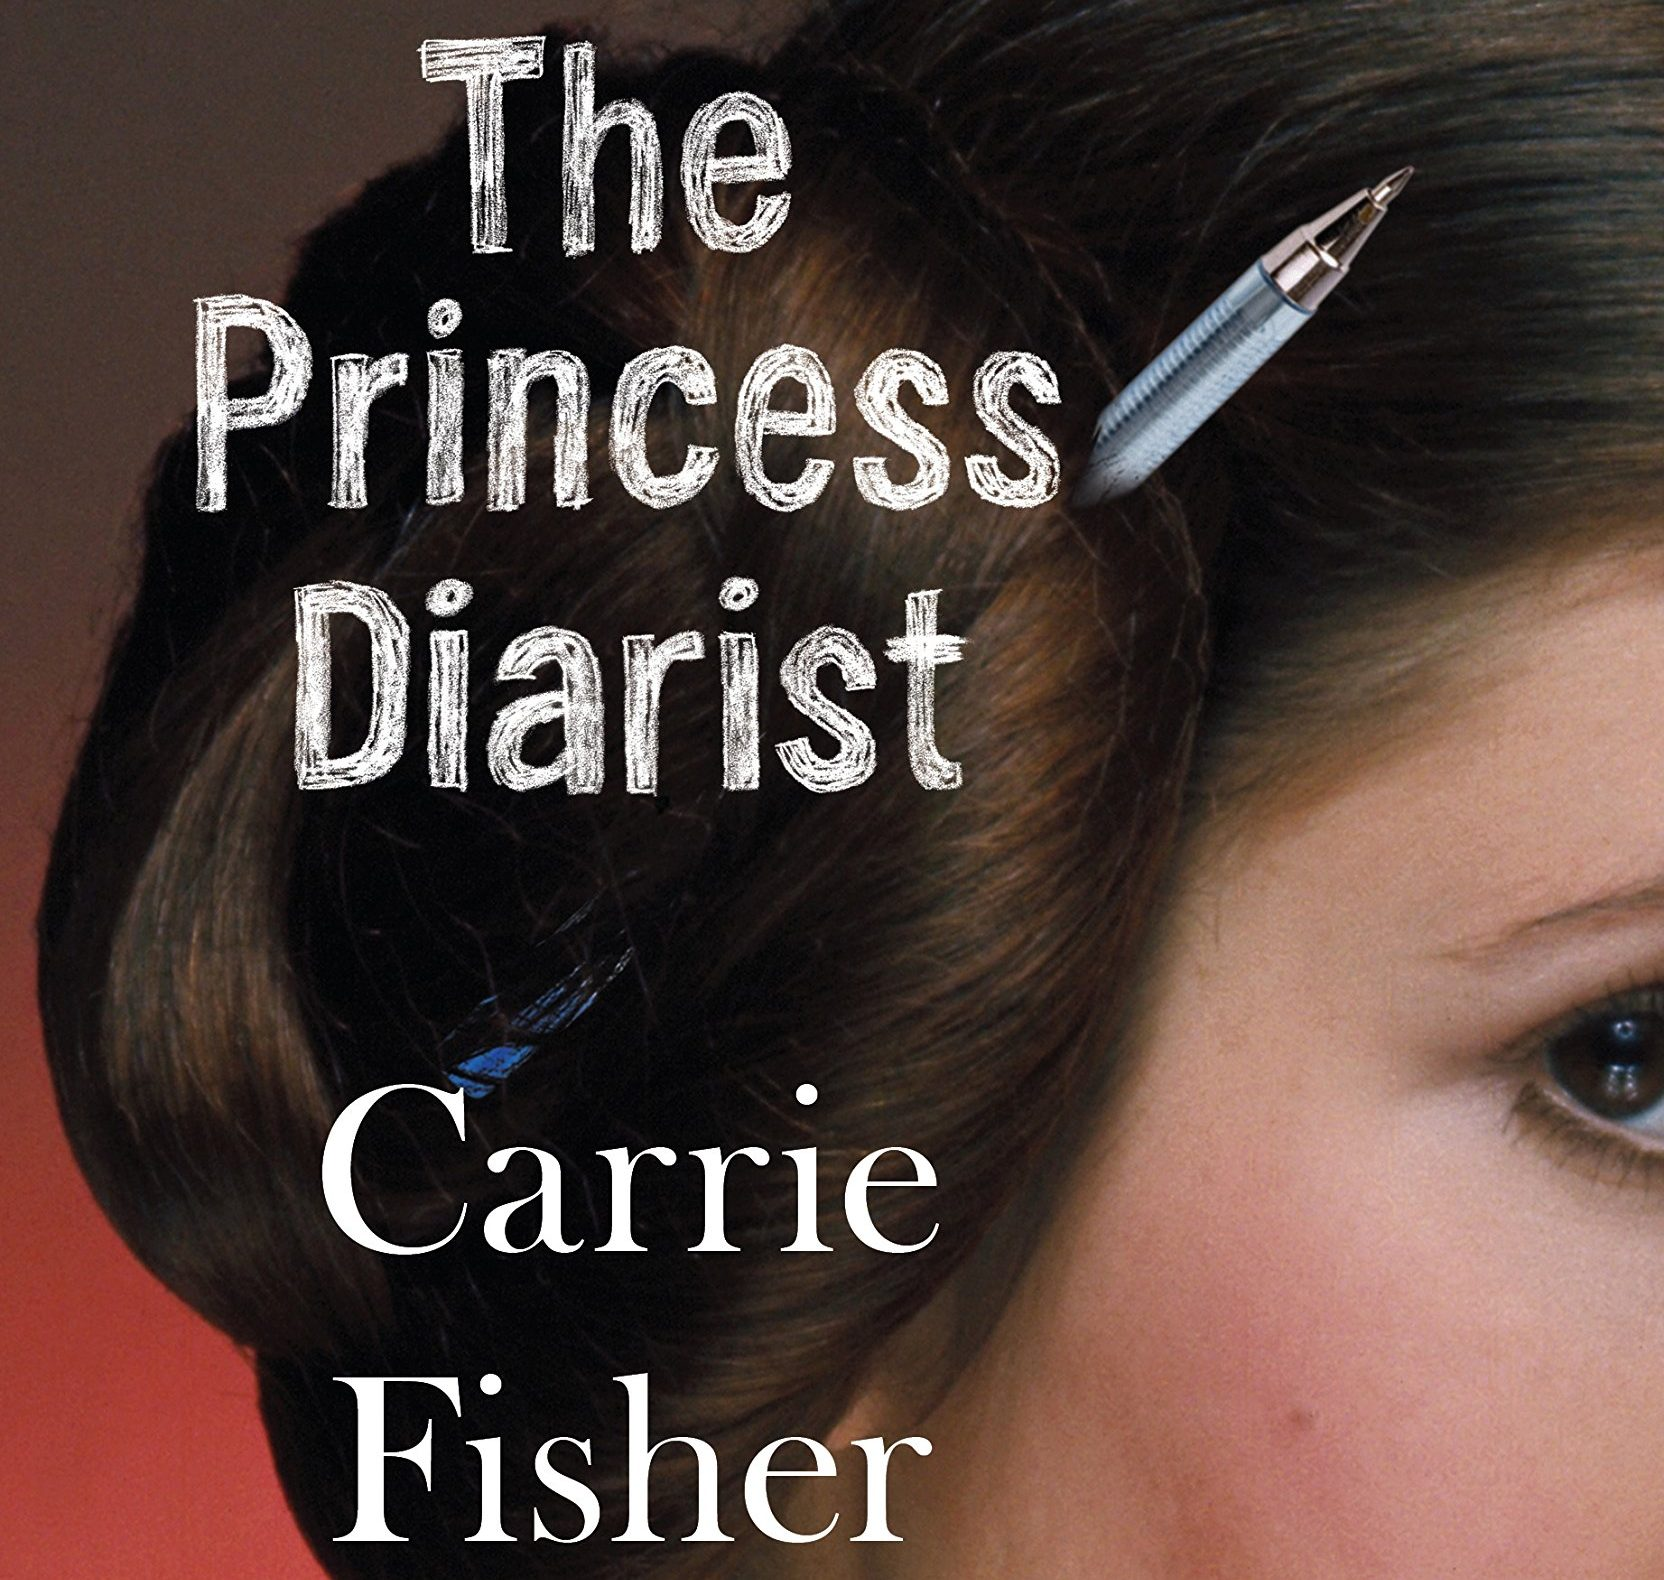 91e1DyG0bhL e1616757617434 10 Fascinating Facts About The Legendary Carrie Fisher